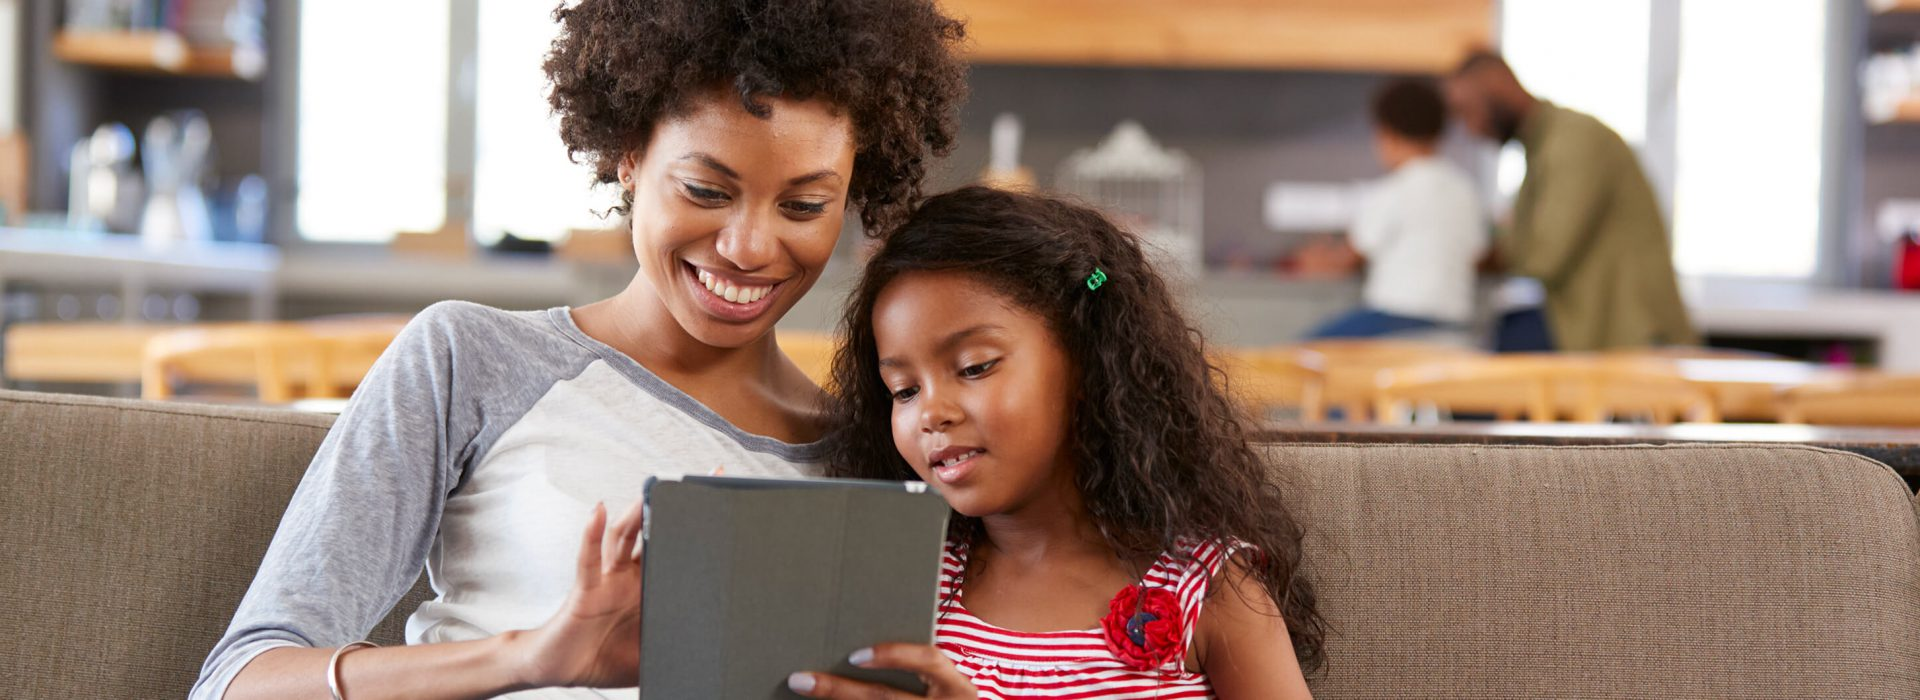 Mother-and-daughter-with-tablet-on-couch